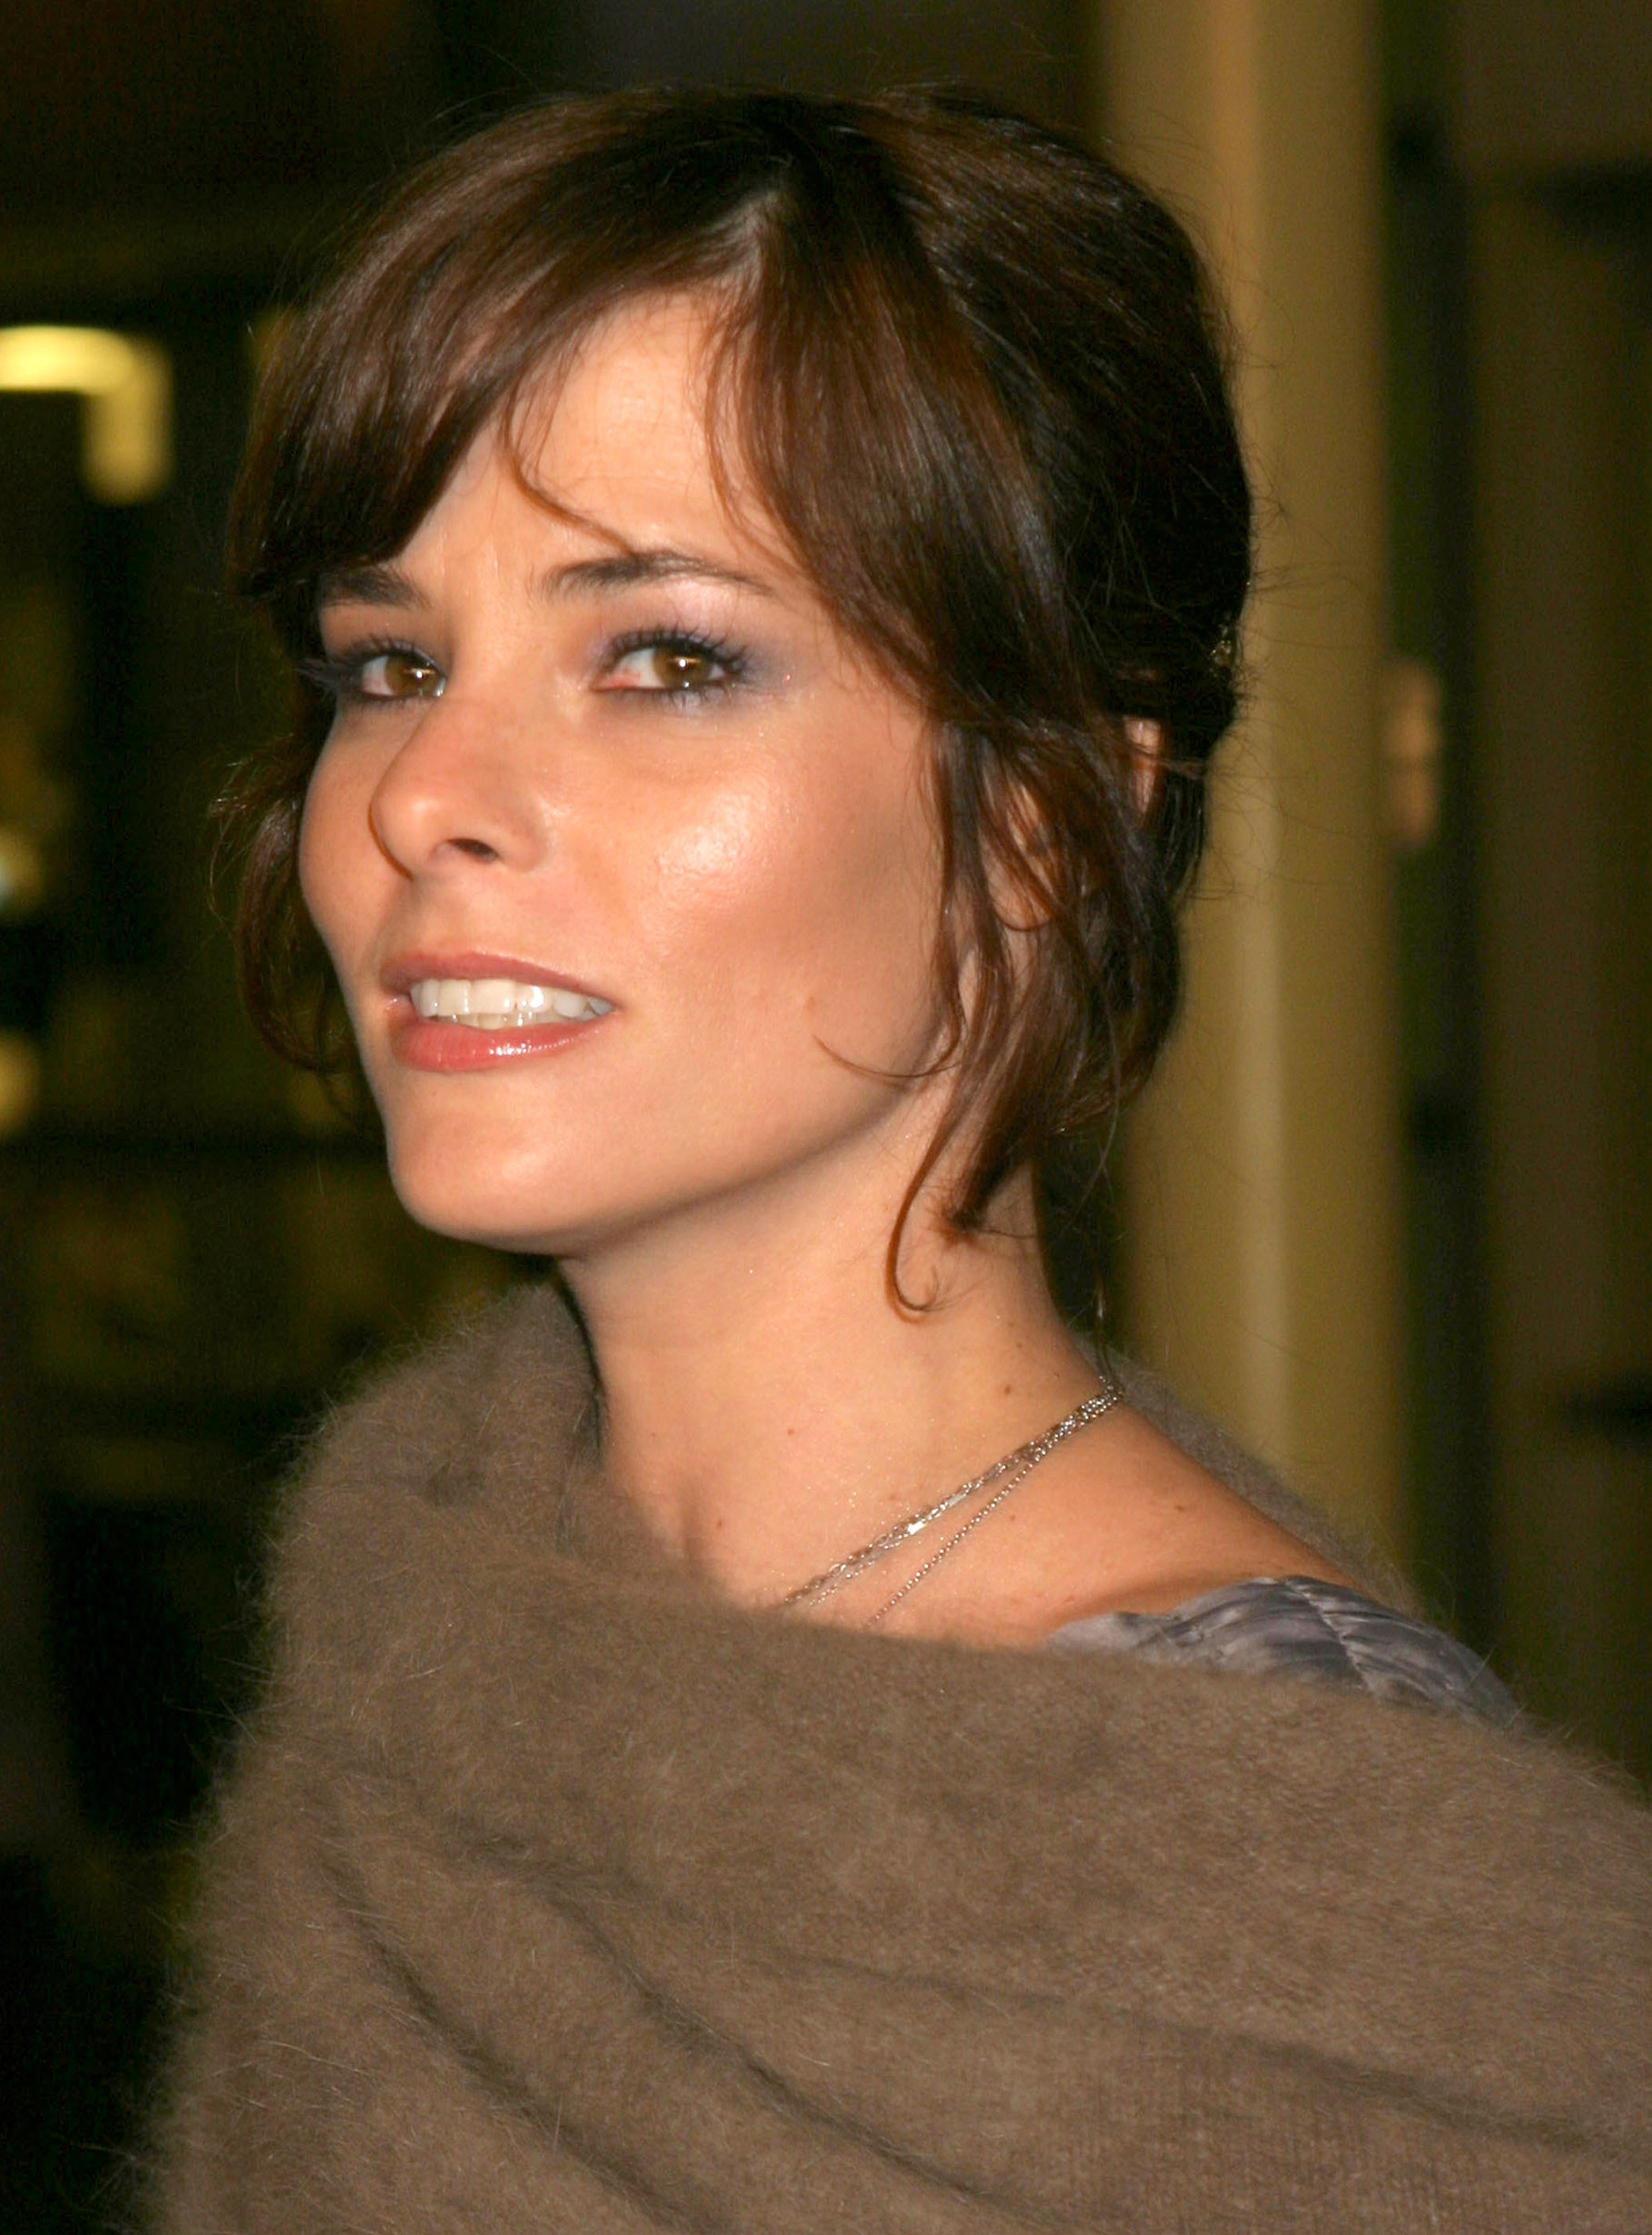 parker posey photo 9 of 21 pics wallpaper photo 206364